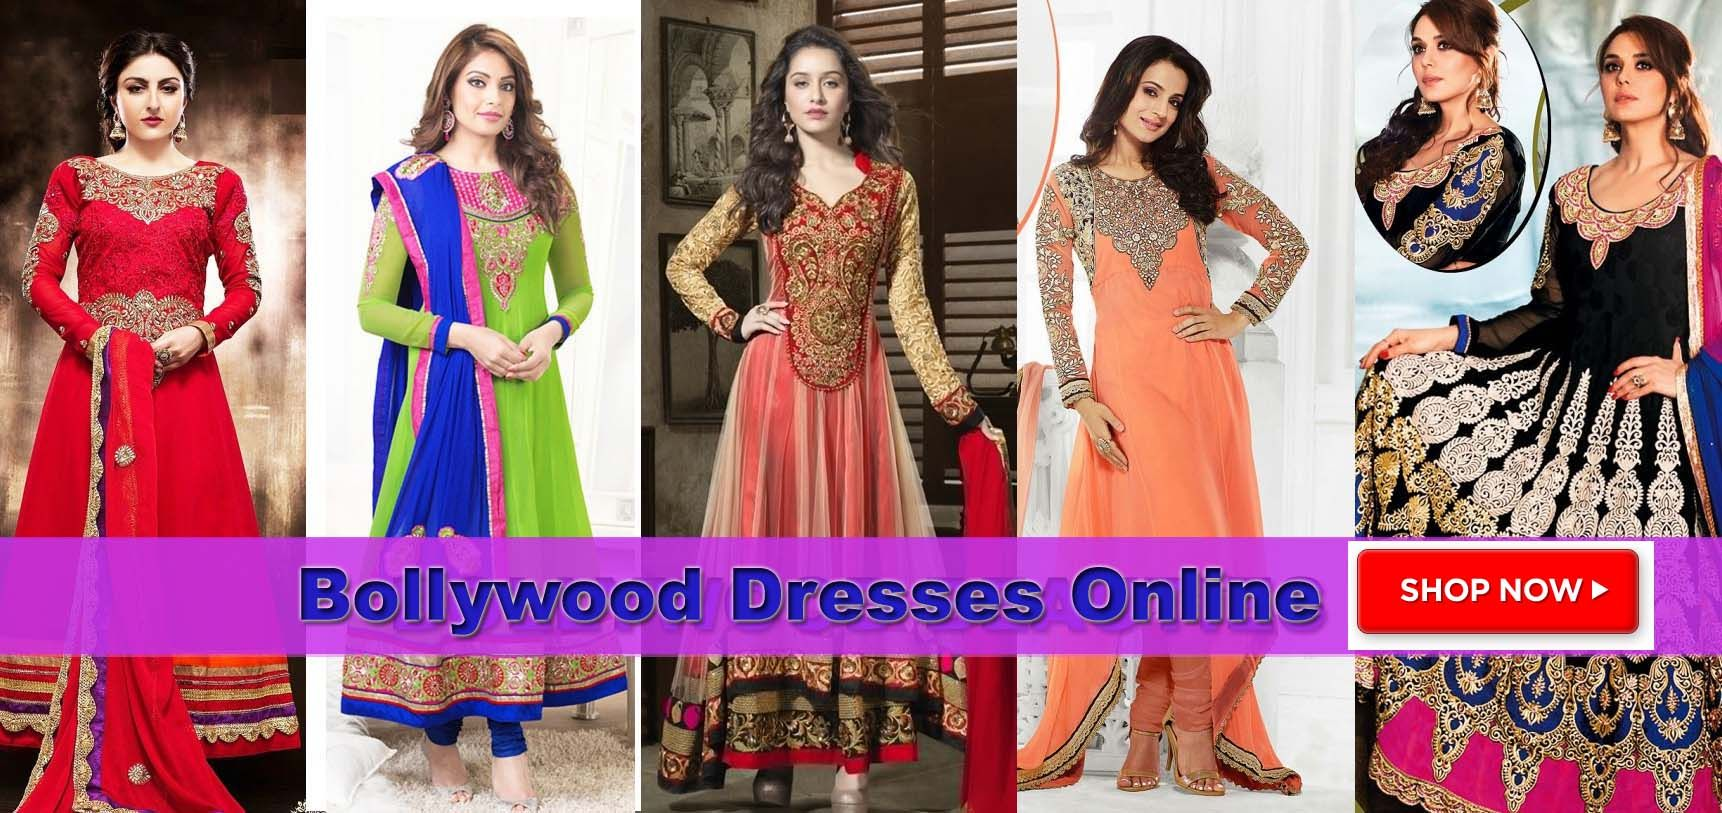 BOLLYWOOD dresses